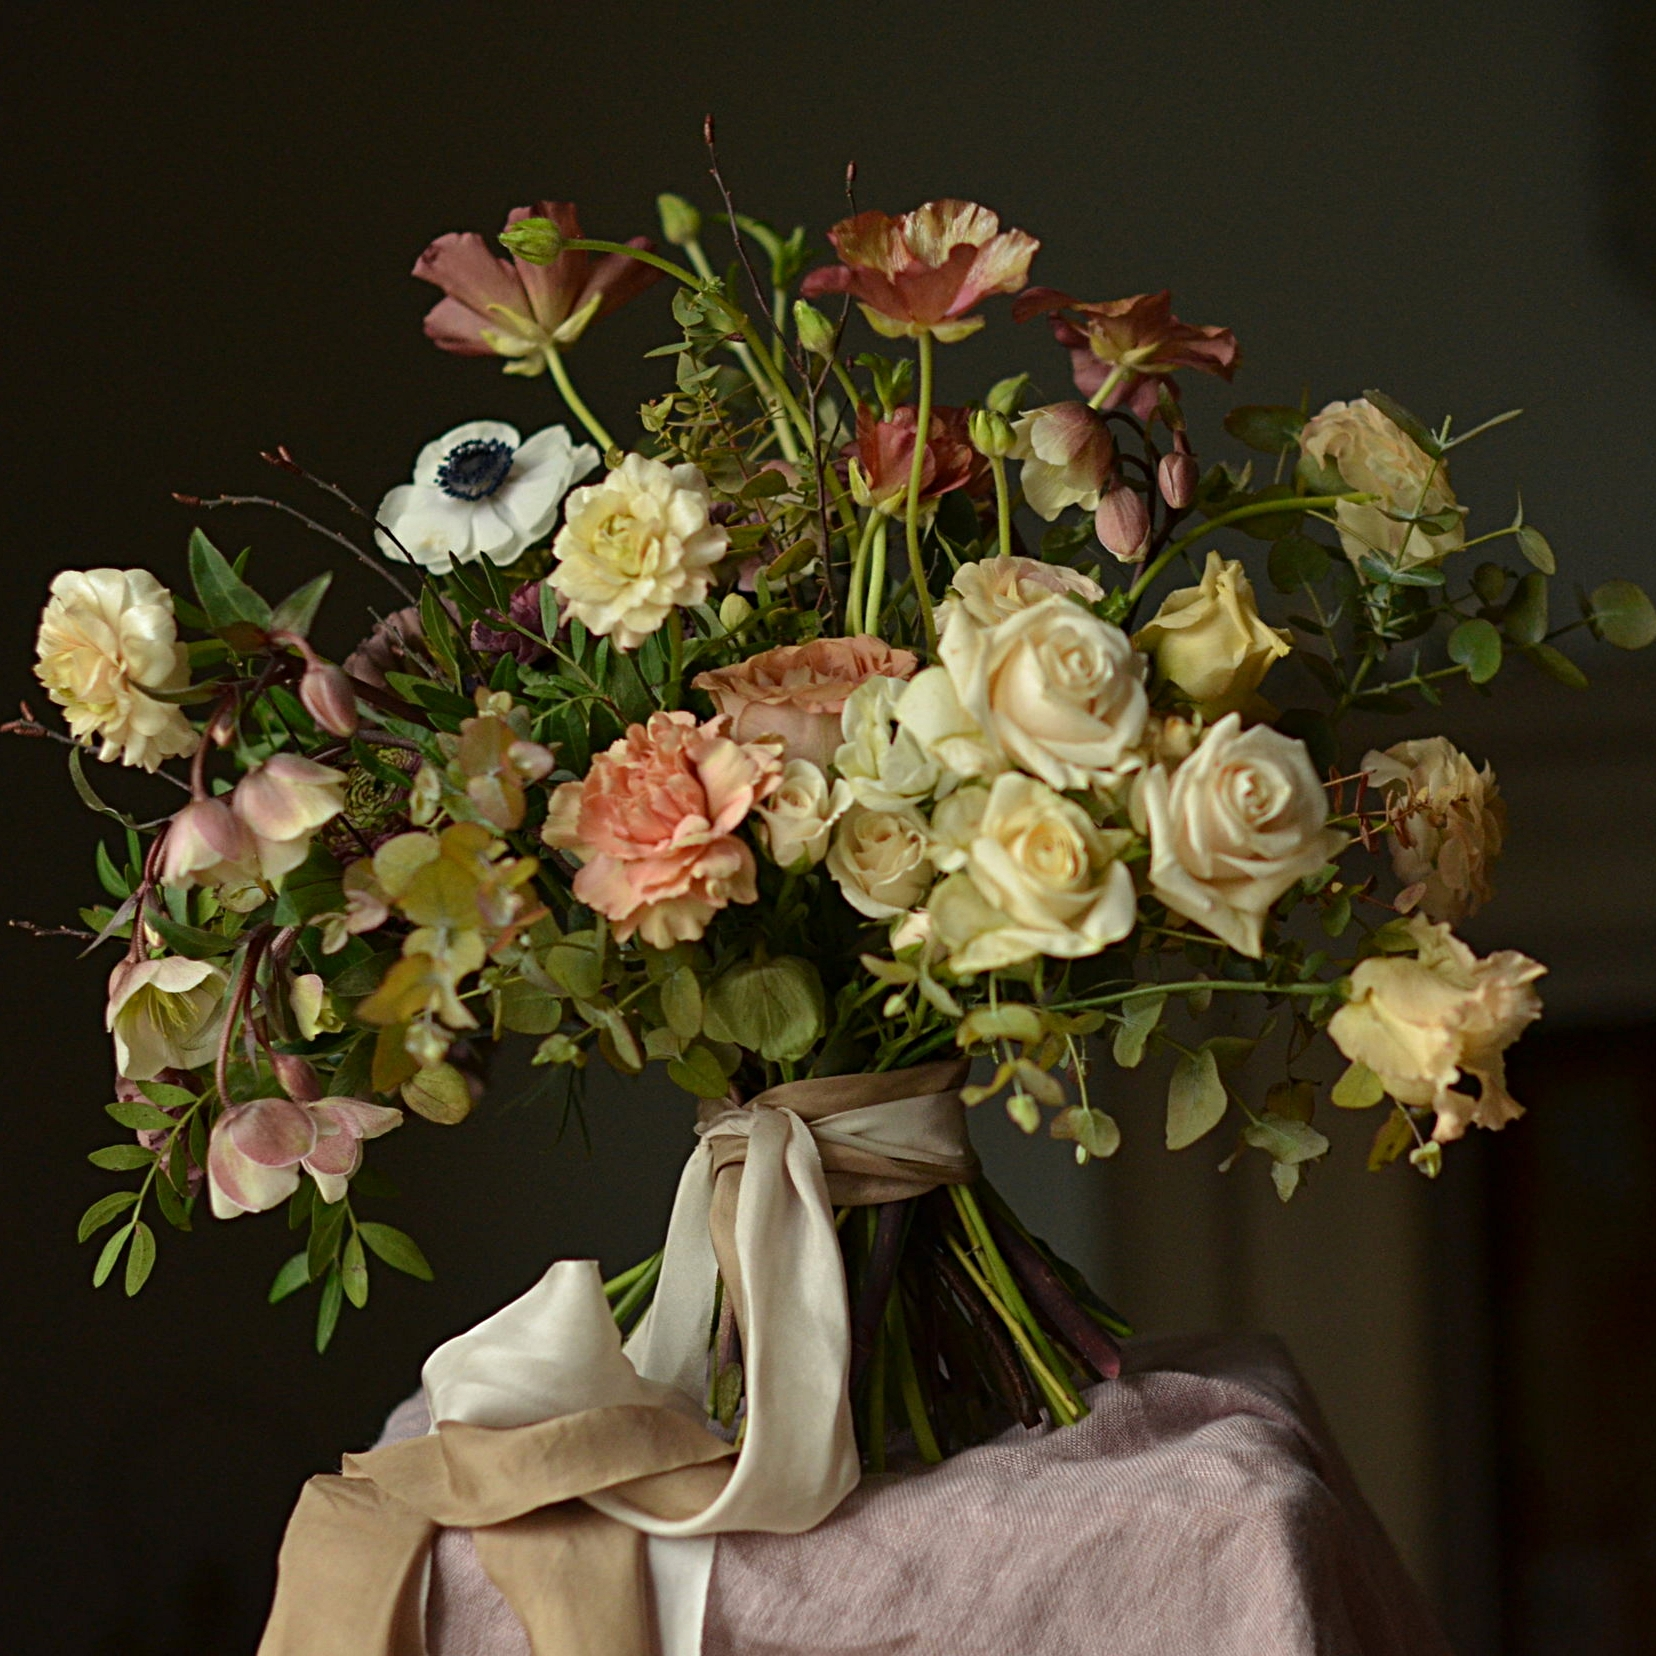 A winters bouquet! Photo courtesy of Sarah Statham of Simply by Arrangement